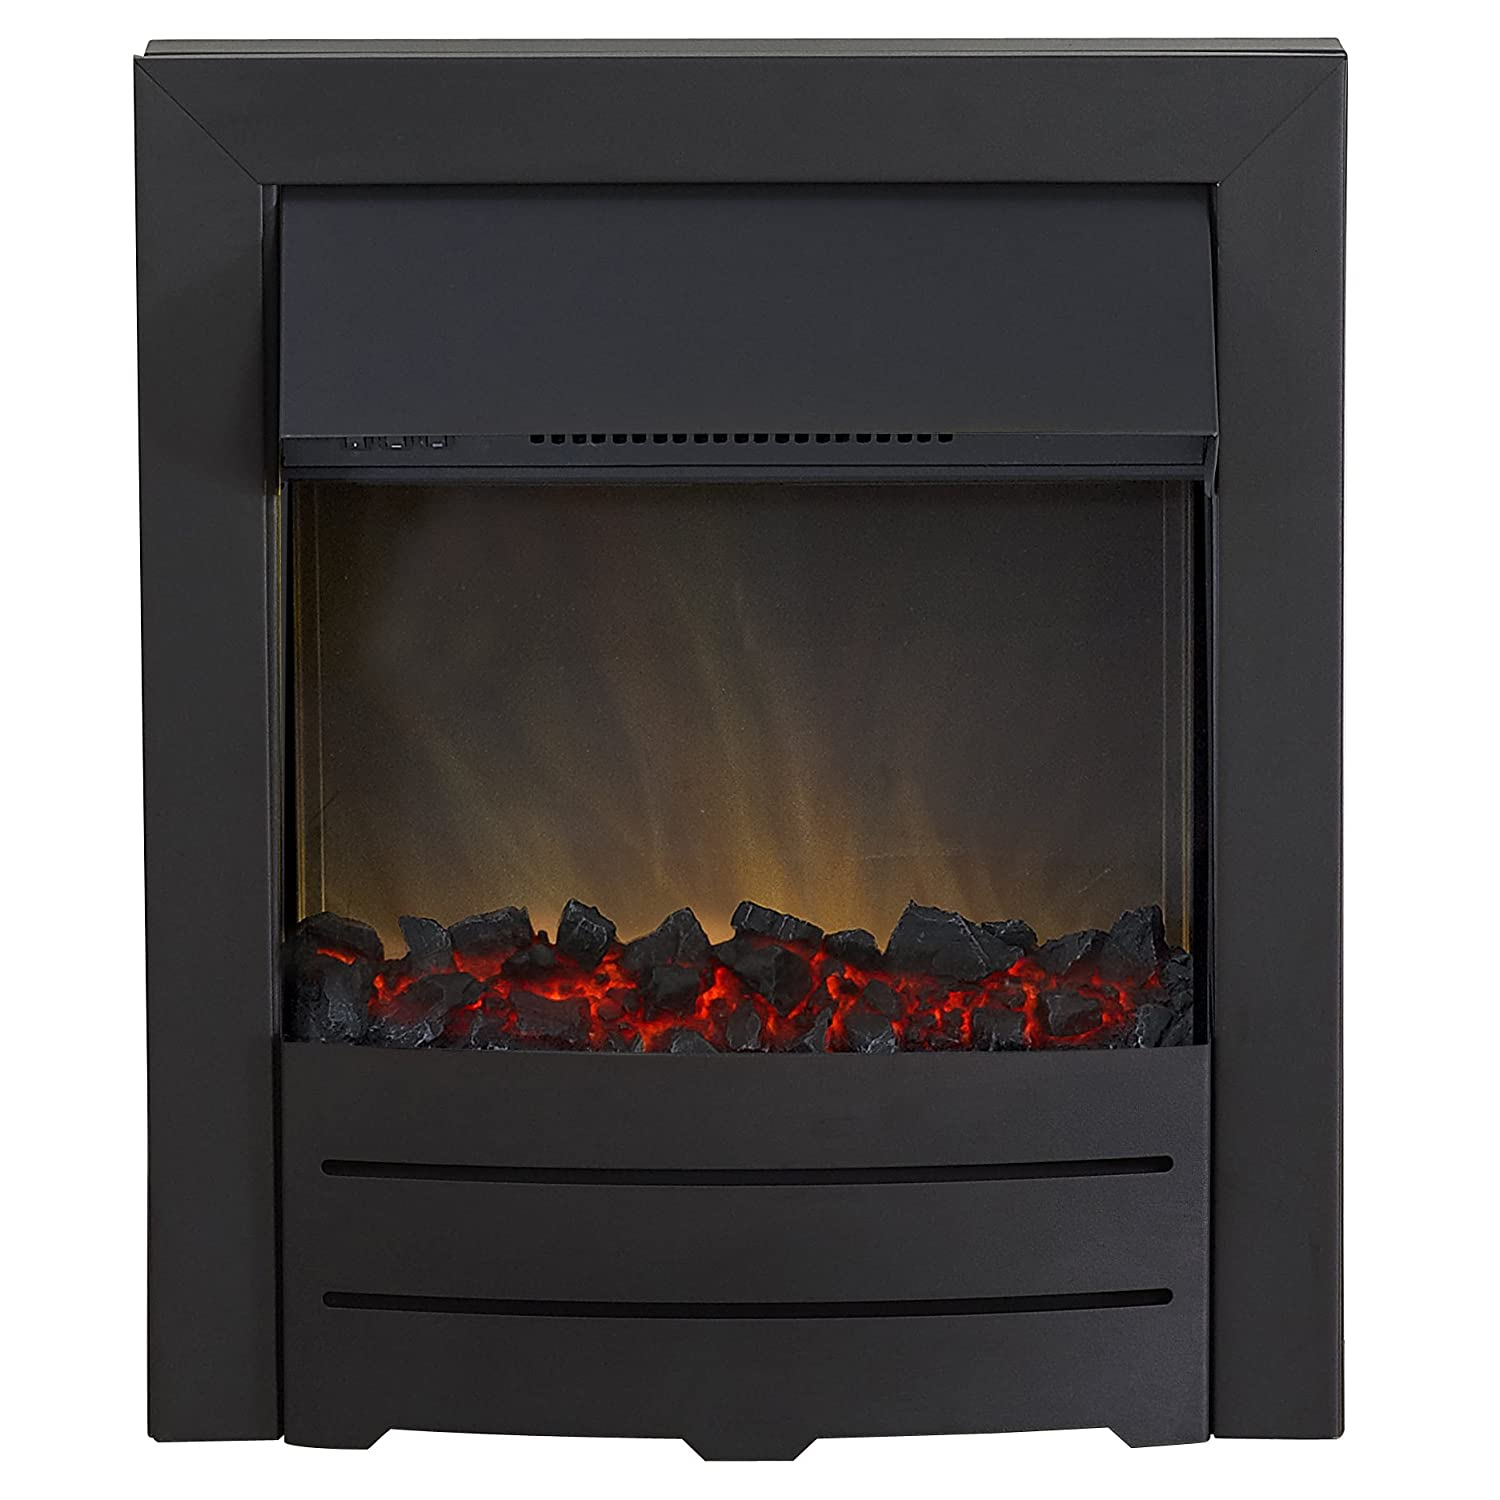 Adam Colorado Electric Inset Fire, 2000 W, Black Fired Up Corporation Ltd 10183